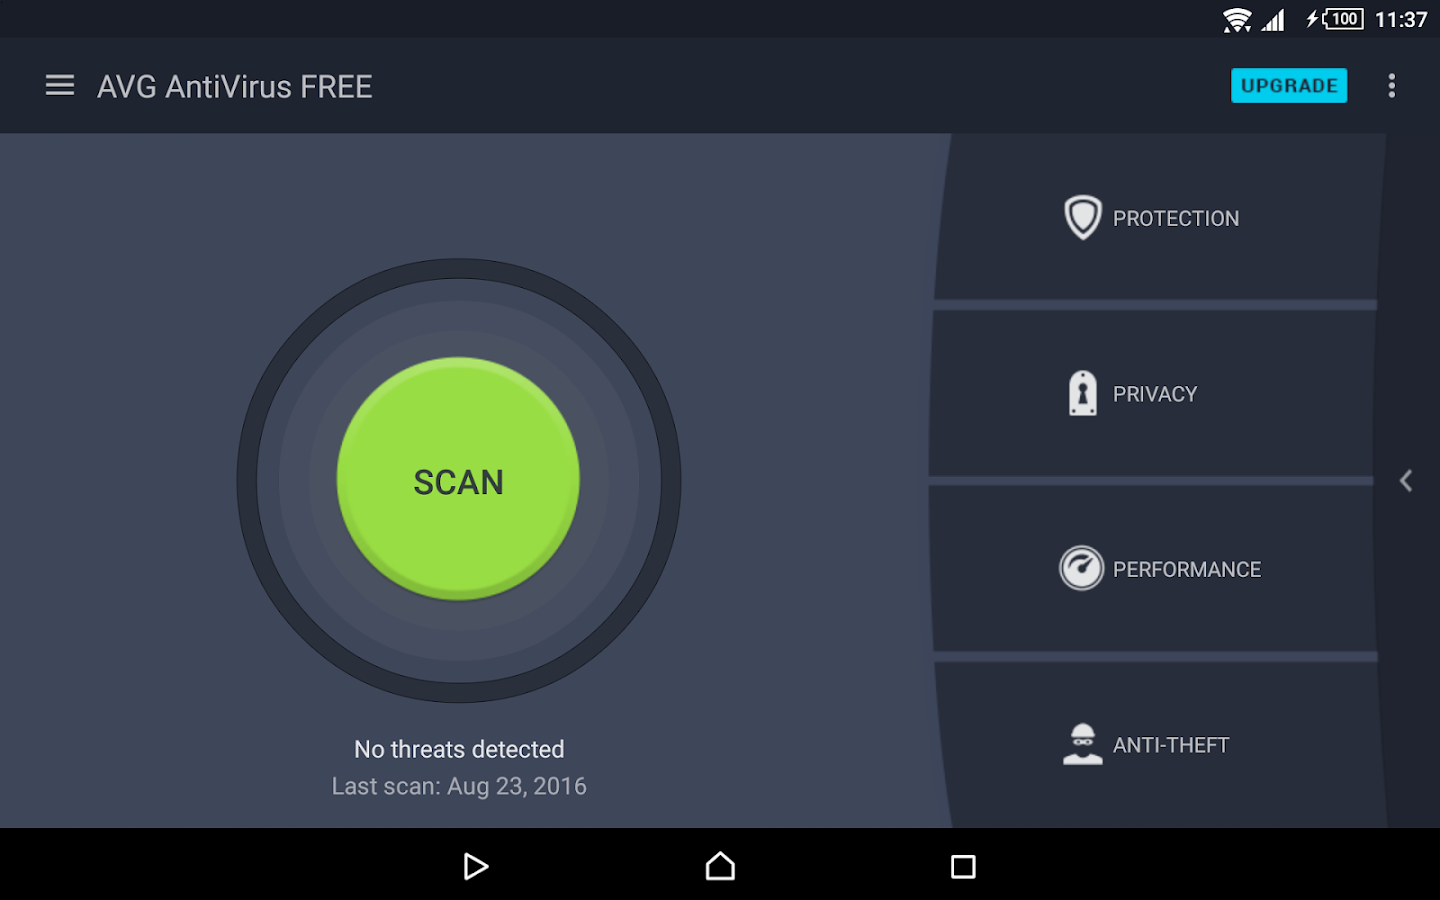 Avg Antivirus Free For Android Security 2017 Android